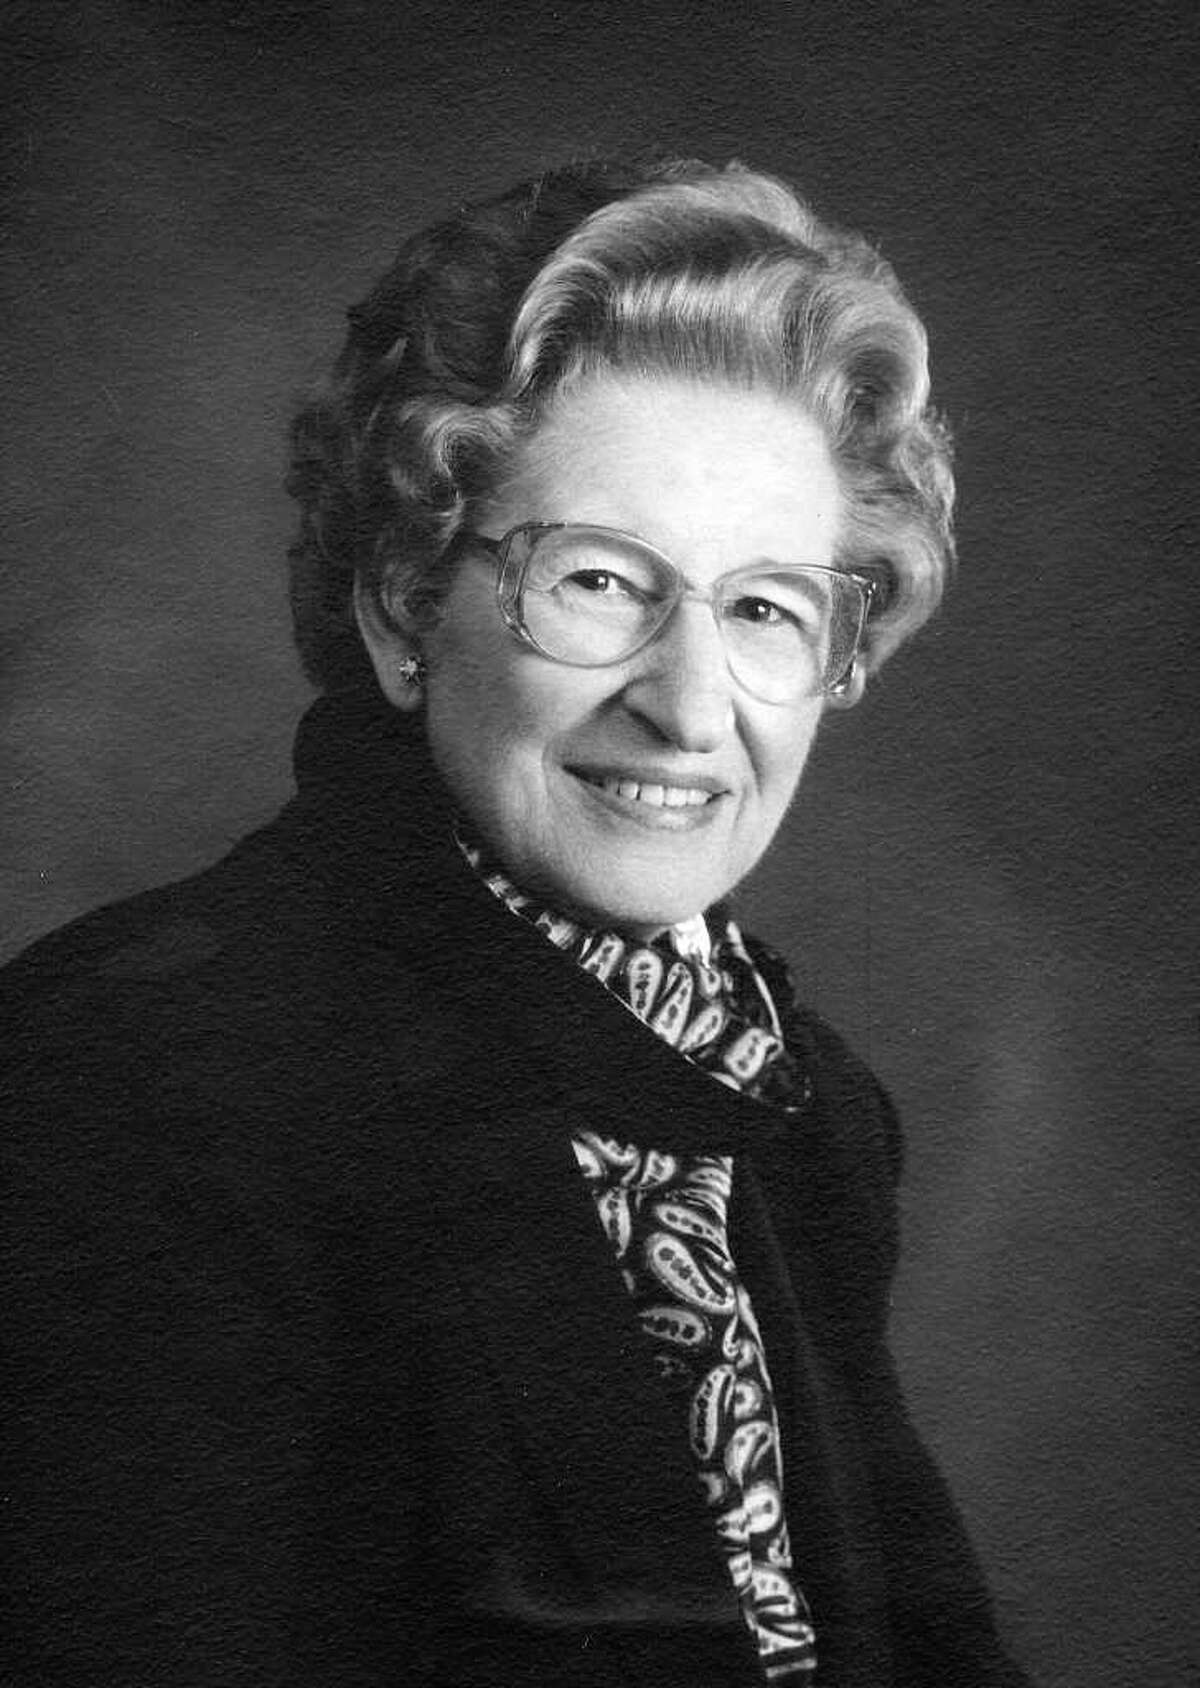 Dr. Edna Myrl (Hughes) Spillar, a leading San Antonio anesthesiologist from the 1960s to the '90s who also became an early diabetes education activist, died Feb. 14 in Austin. Credited with reshaping the practice of anesthesia, Spiller spent more than 50 years in medicine, as both a nurse and a doctor. She was 89.